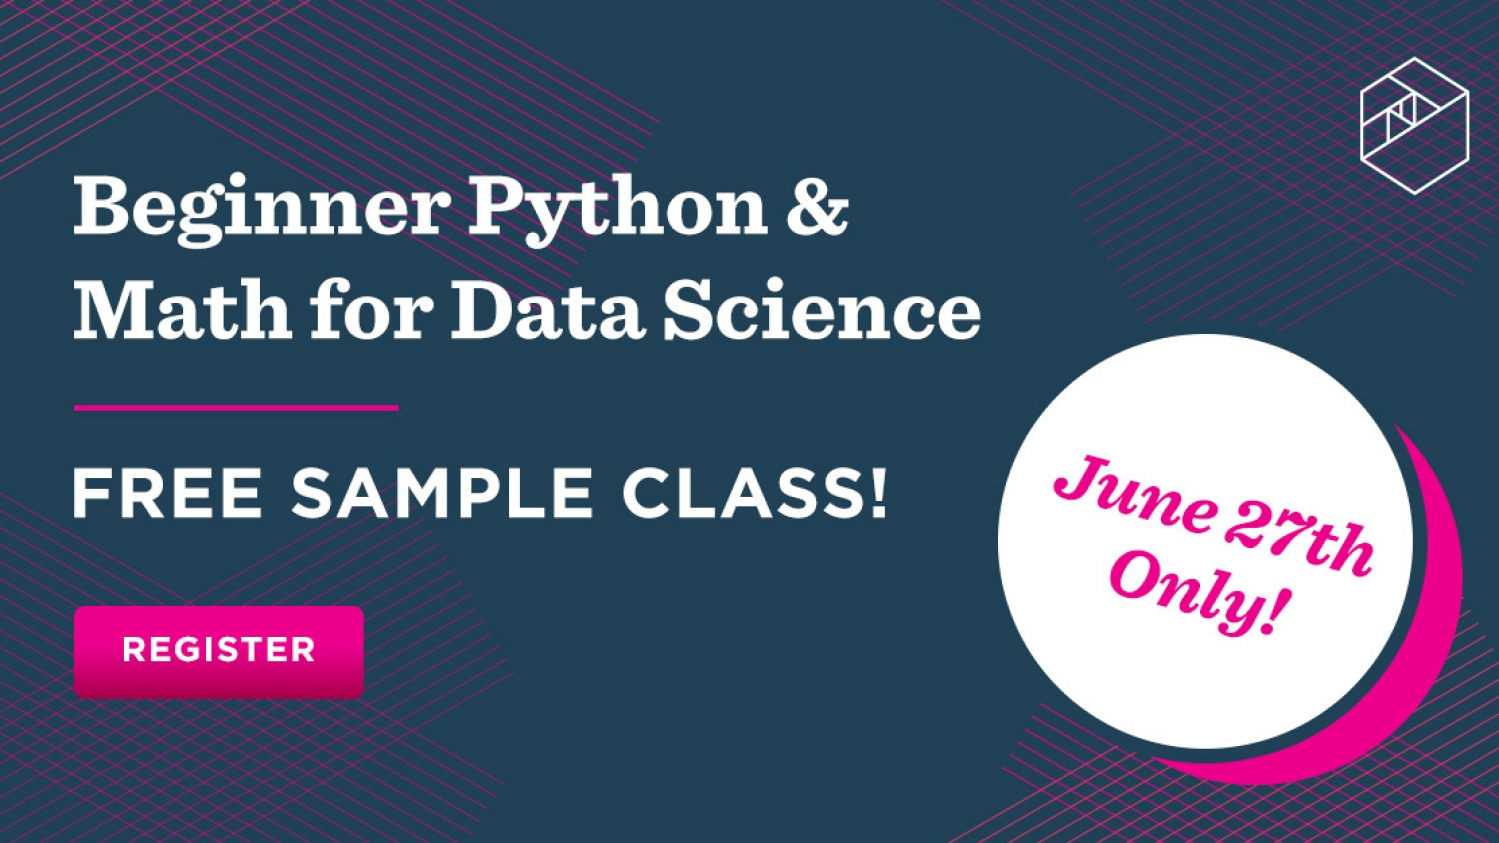 Beginner Python & Math for Data Science   Events   Explore Group